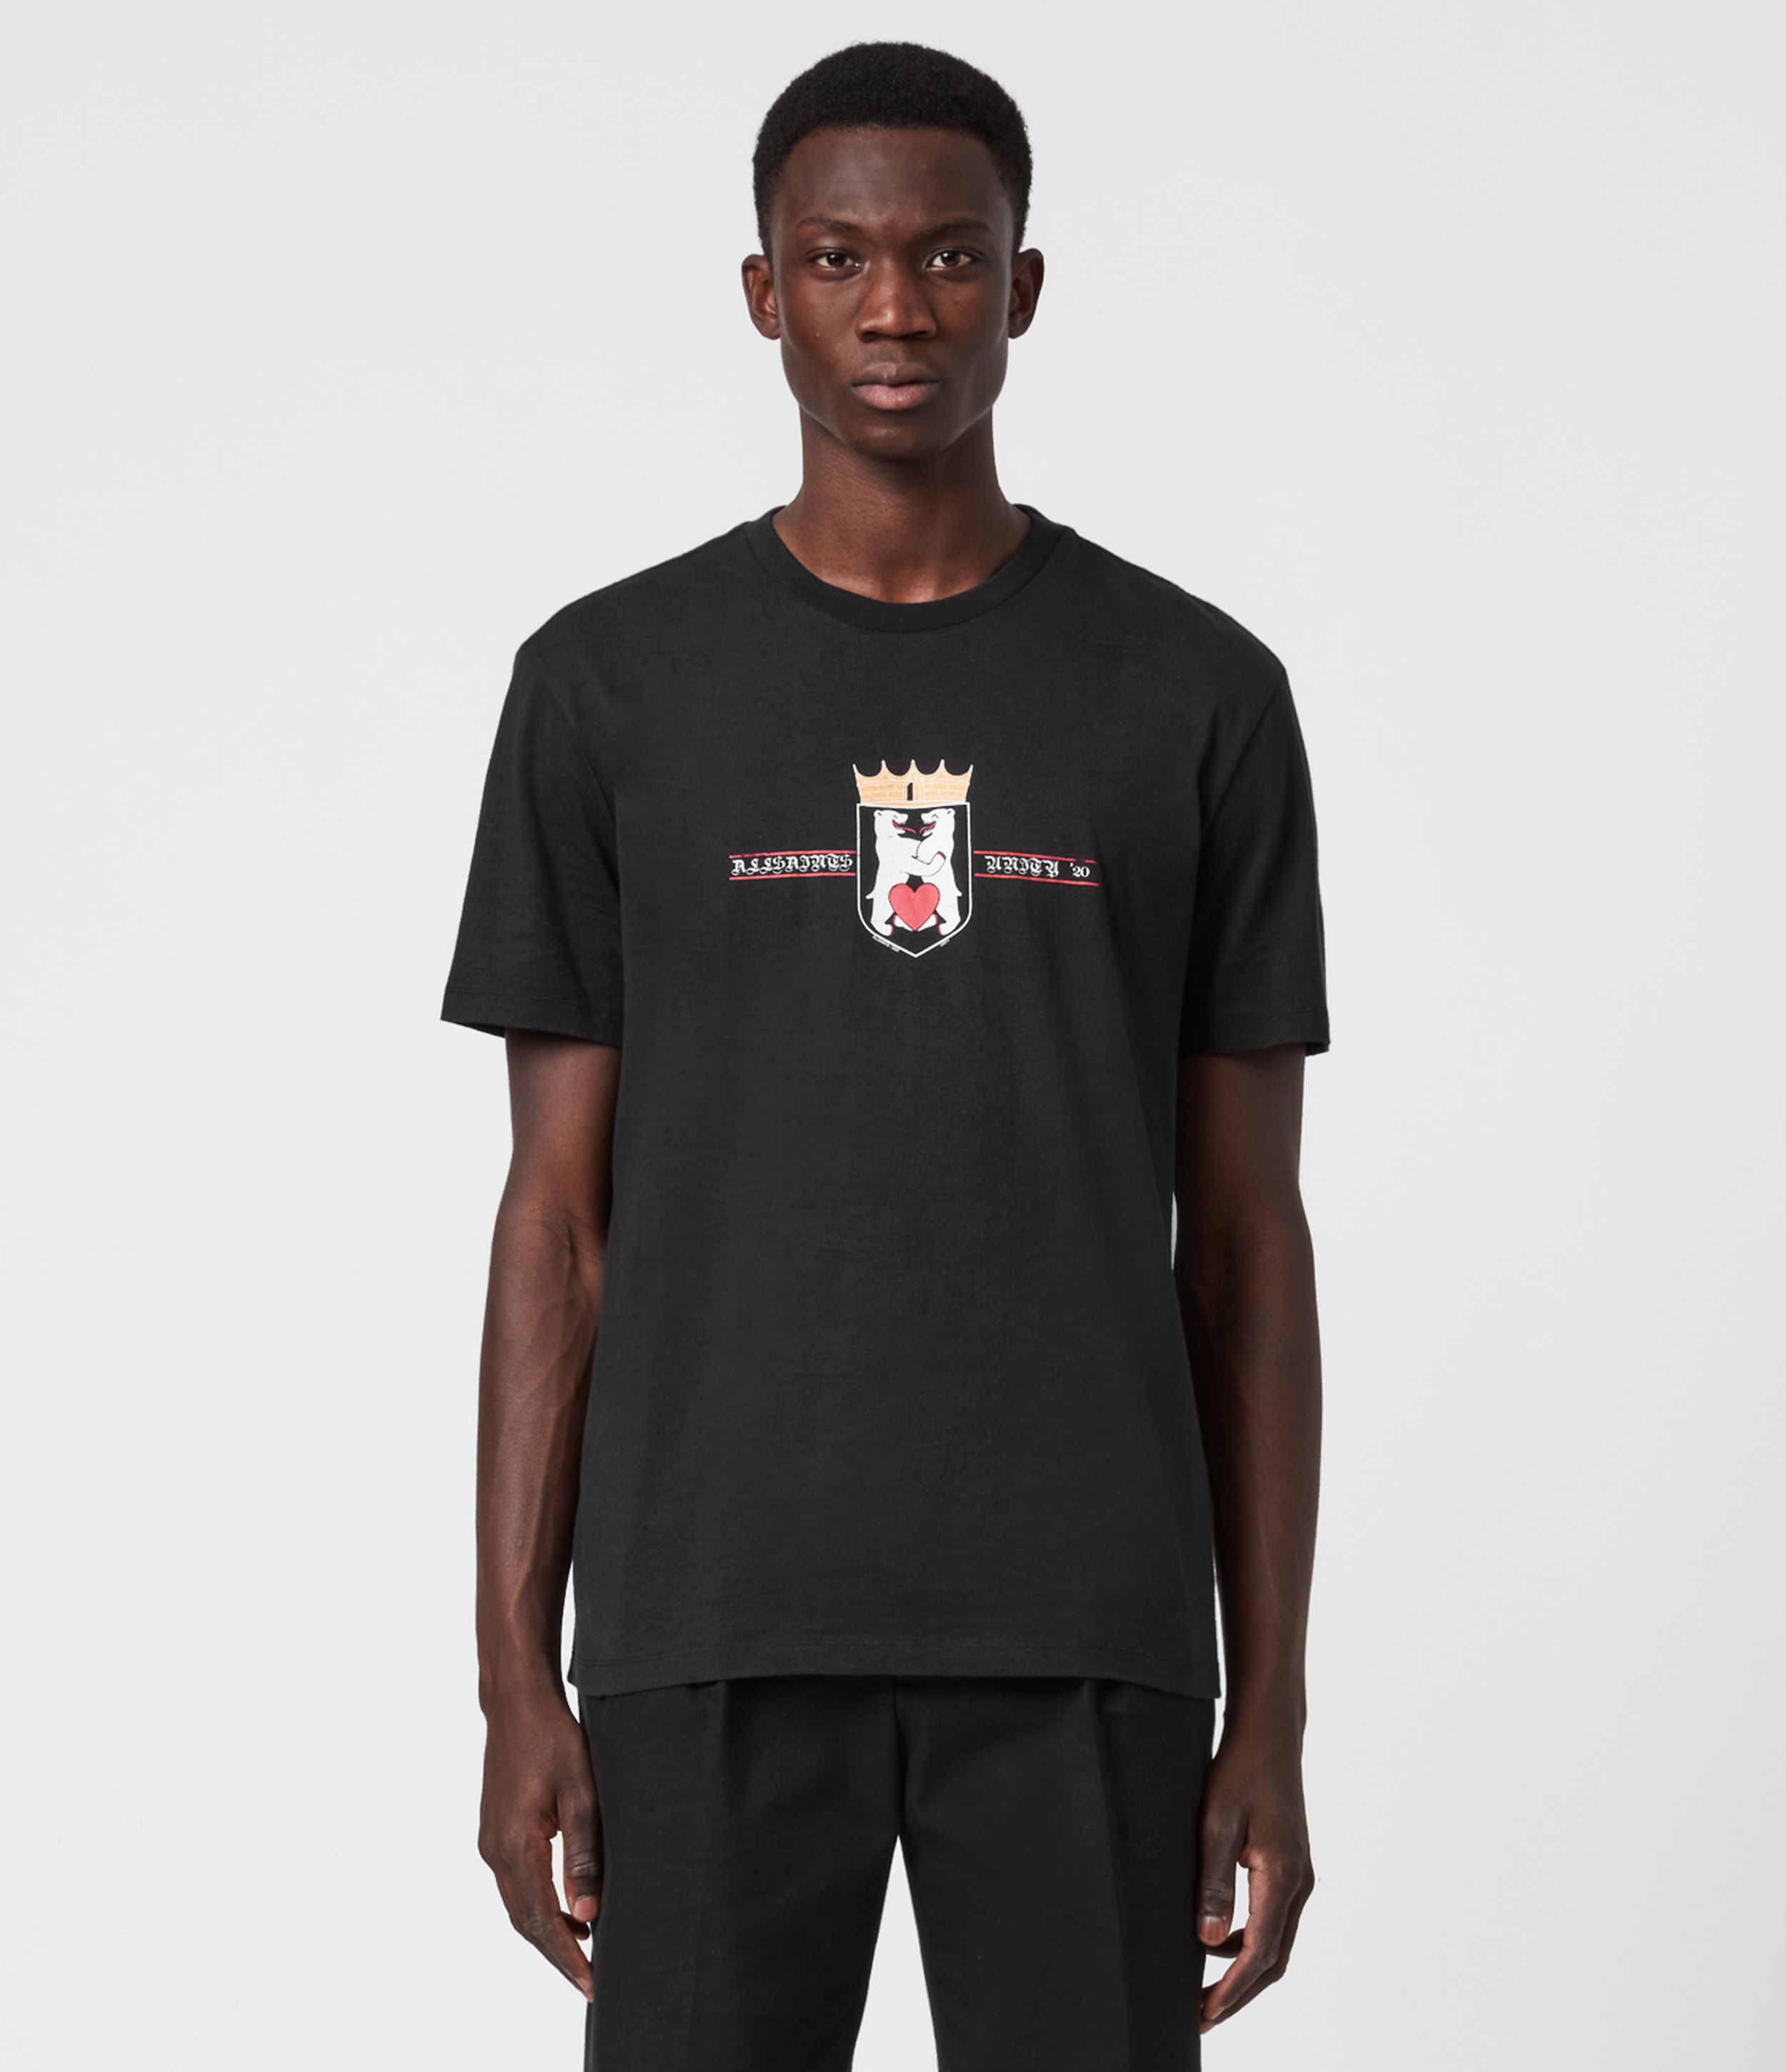 AllSaints Big Mood Crew T-Shirt